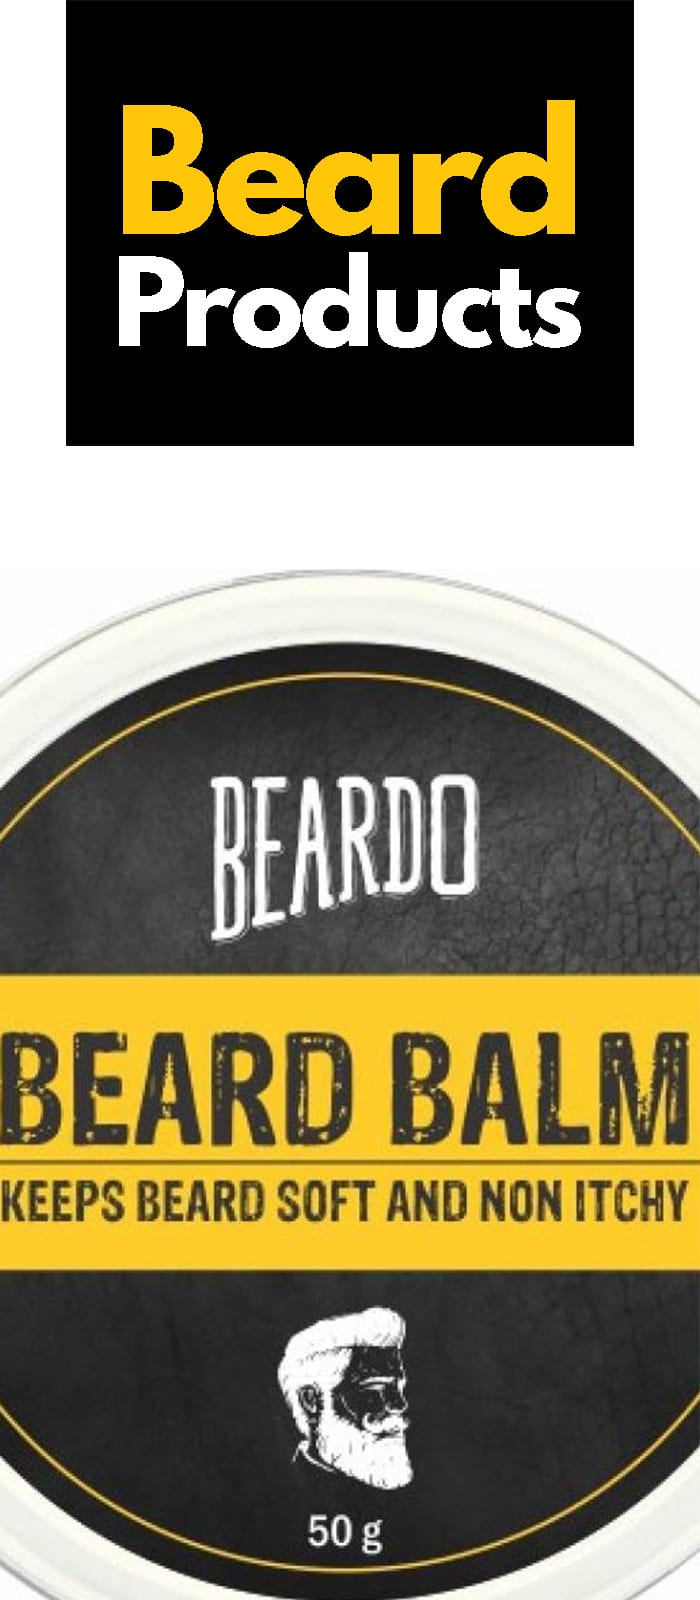 Beard Grooming Guide